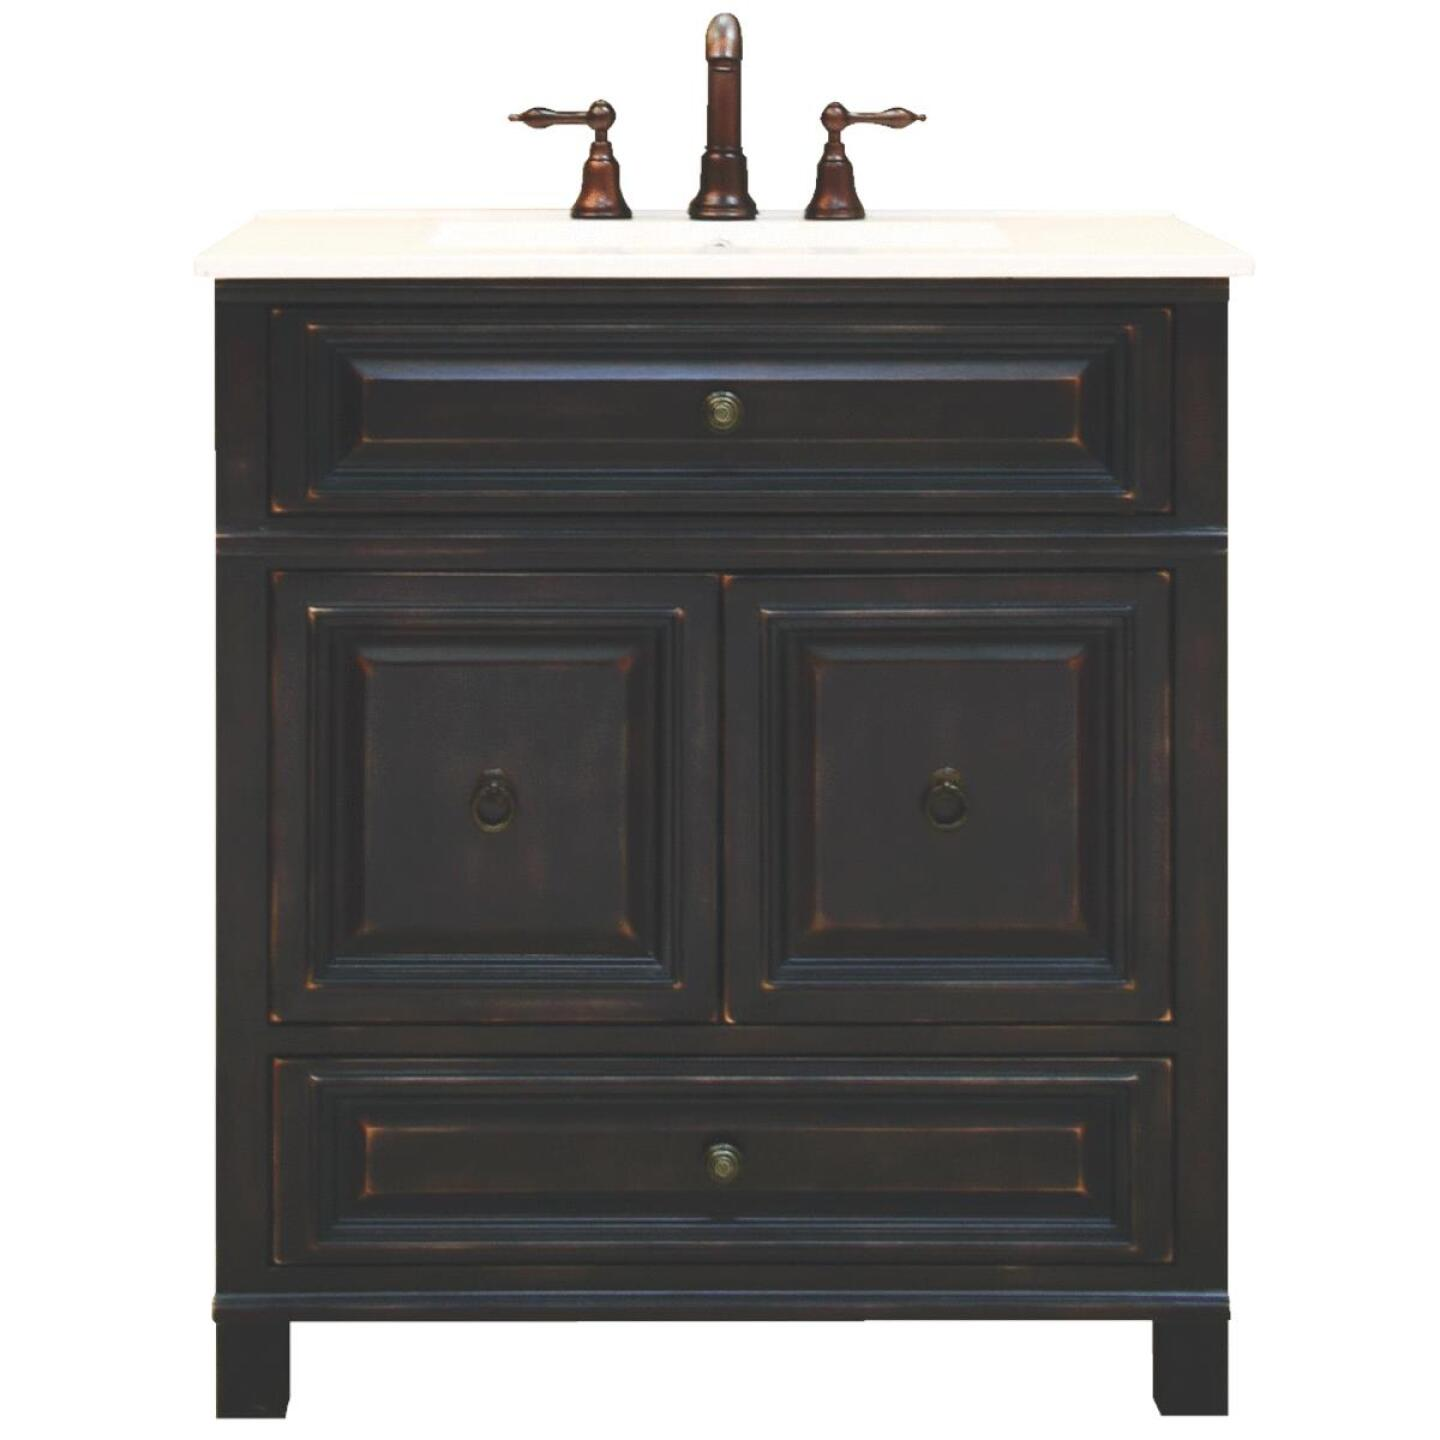 Sunny Wood Barton Hill Black Onyx 30 In. W x 34 In. H x 21 In. D Vanity Base, 2 Door/1 Drawer Image 295